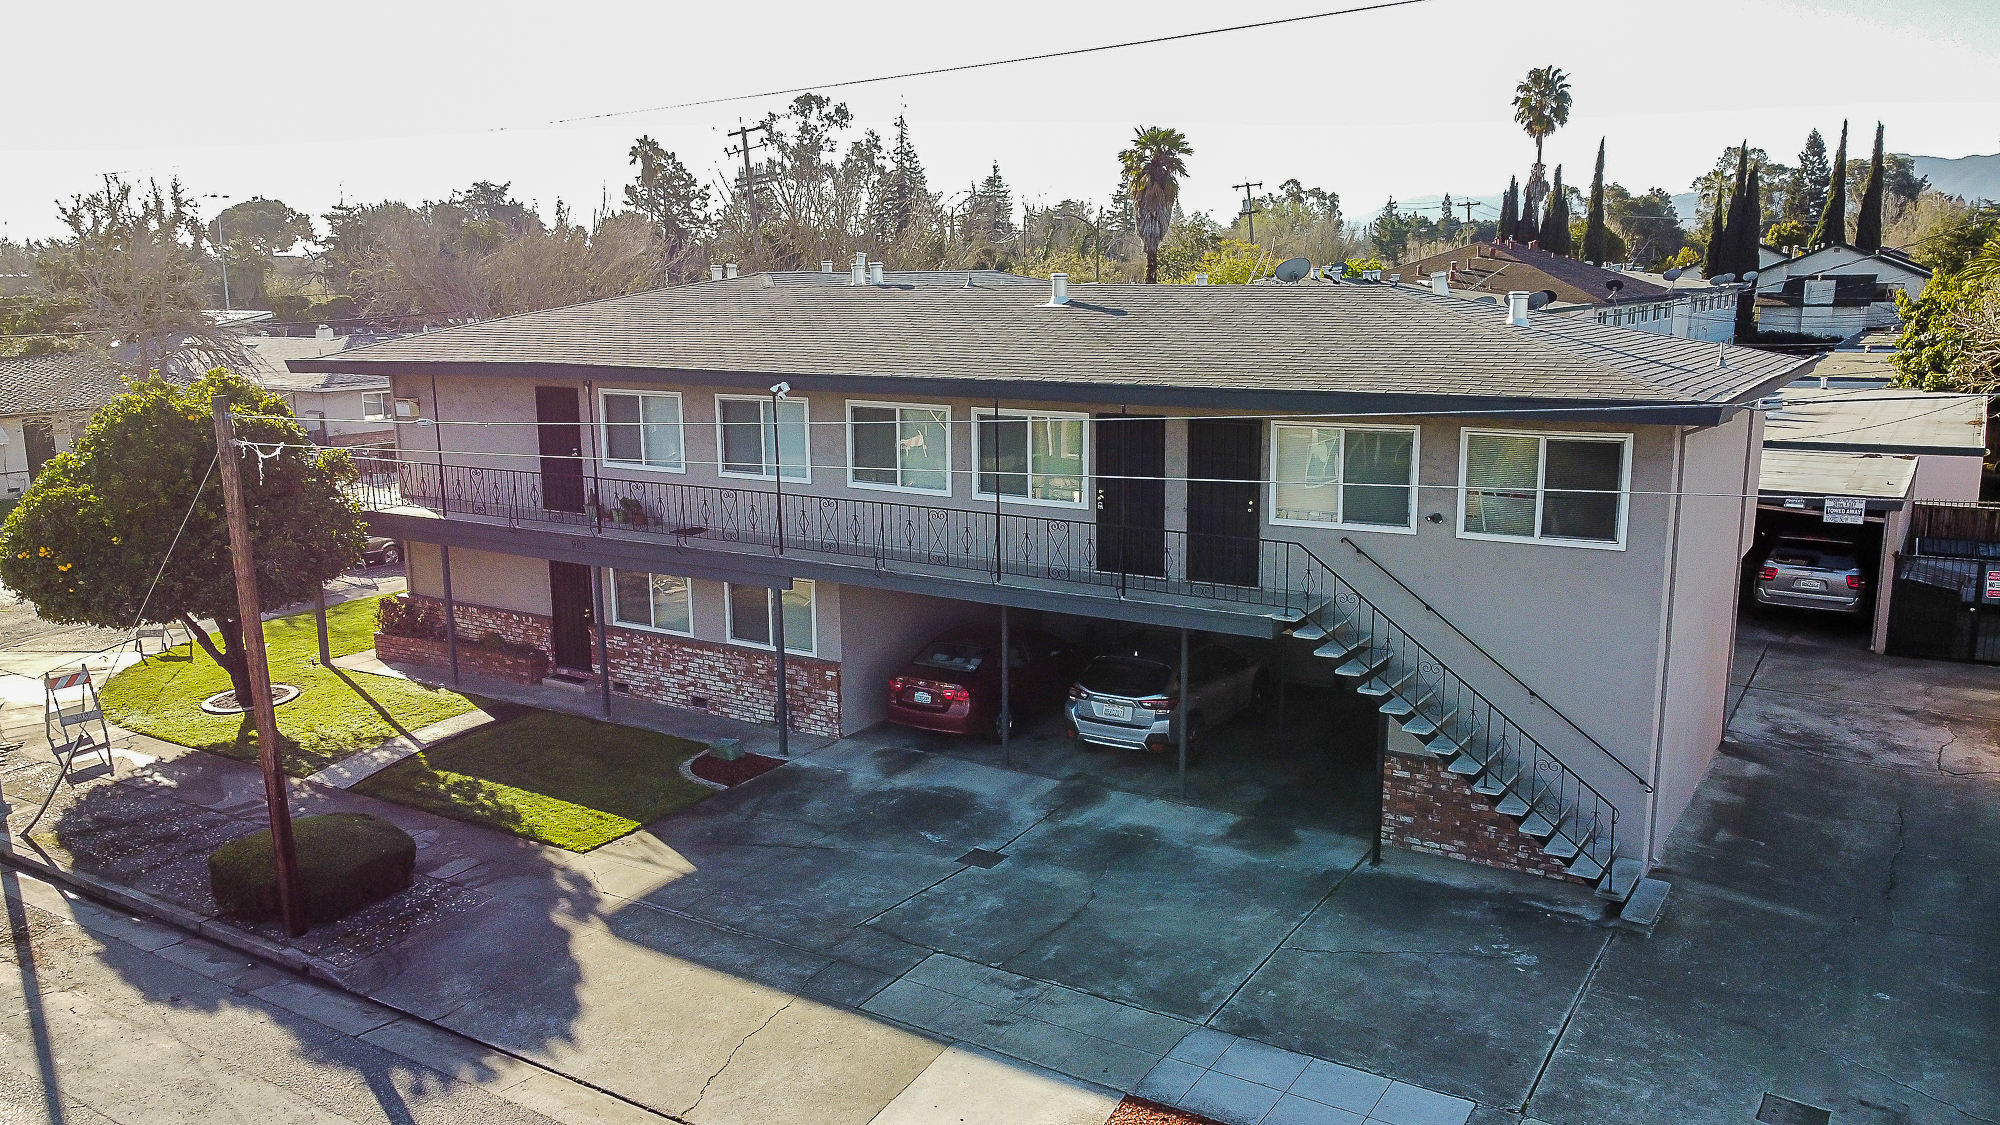 905 Northrup carport and frontage aerial image